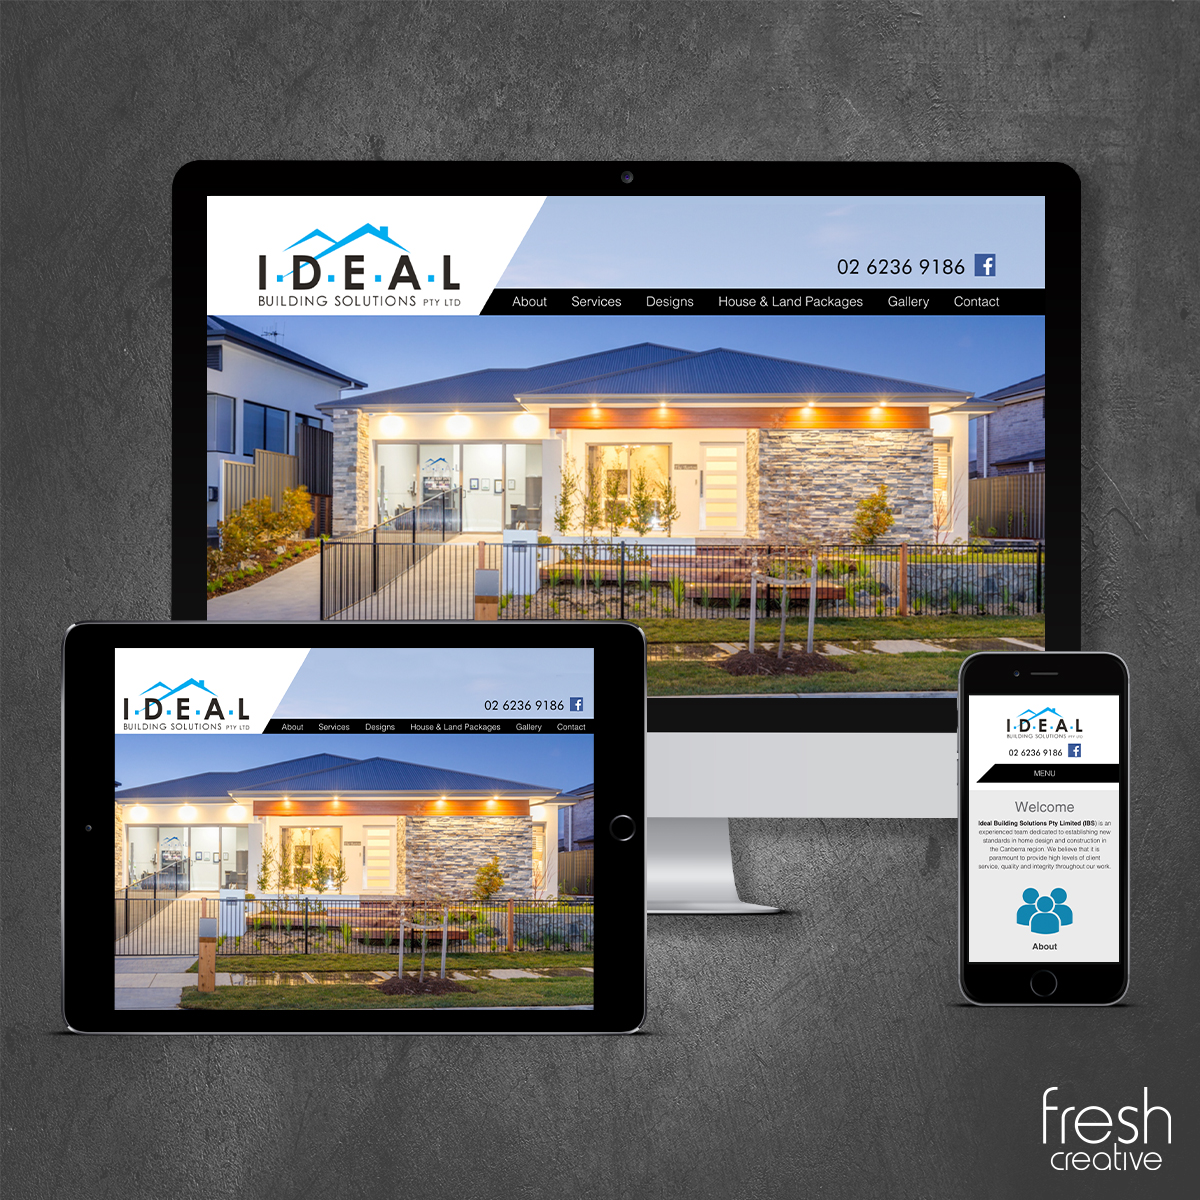 Ideal Building Solutions Website